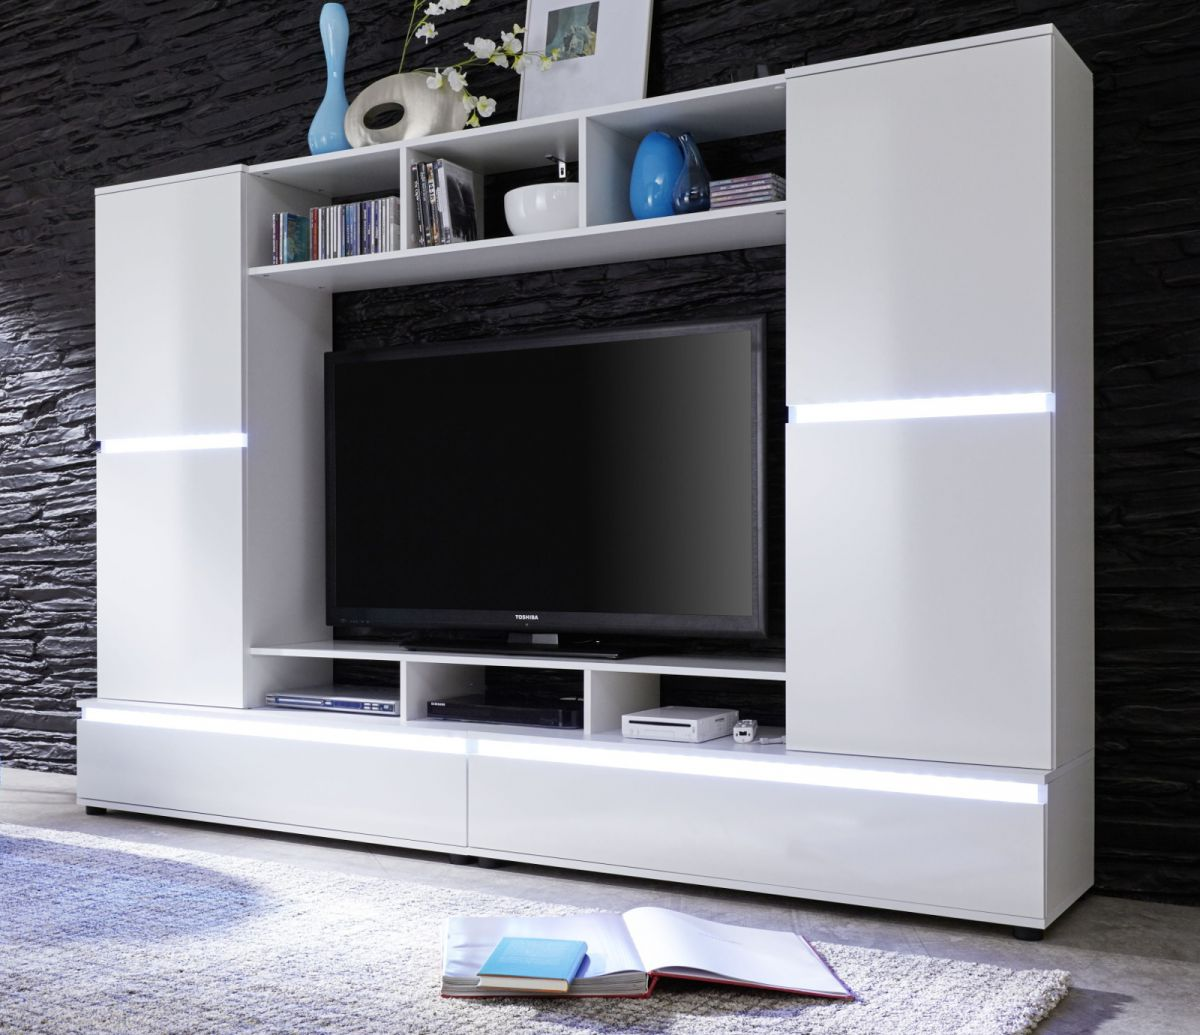 wohnwand mediawand in wei glanz fernsehschrank 220 cm 55 tv hifi m bel ttx01 ebay. Black Bedroom Furniture Sets. Home Design Ideas